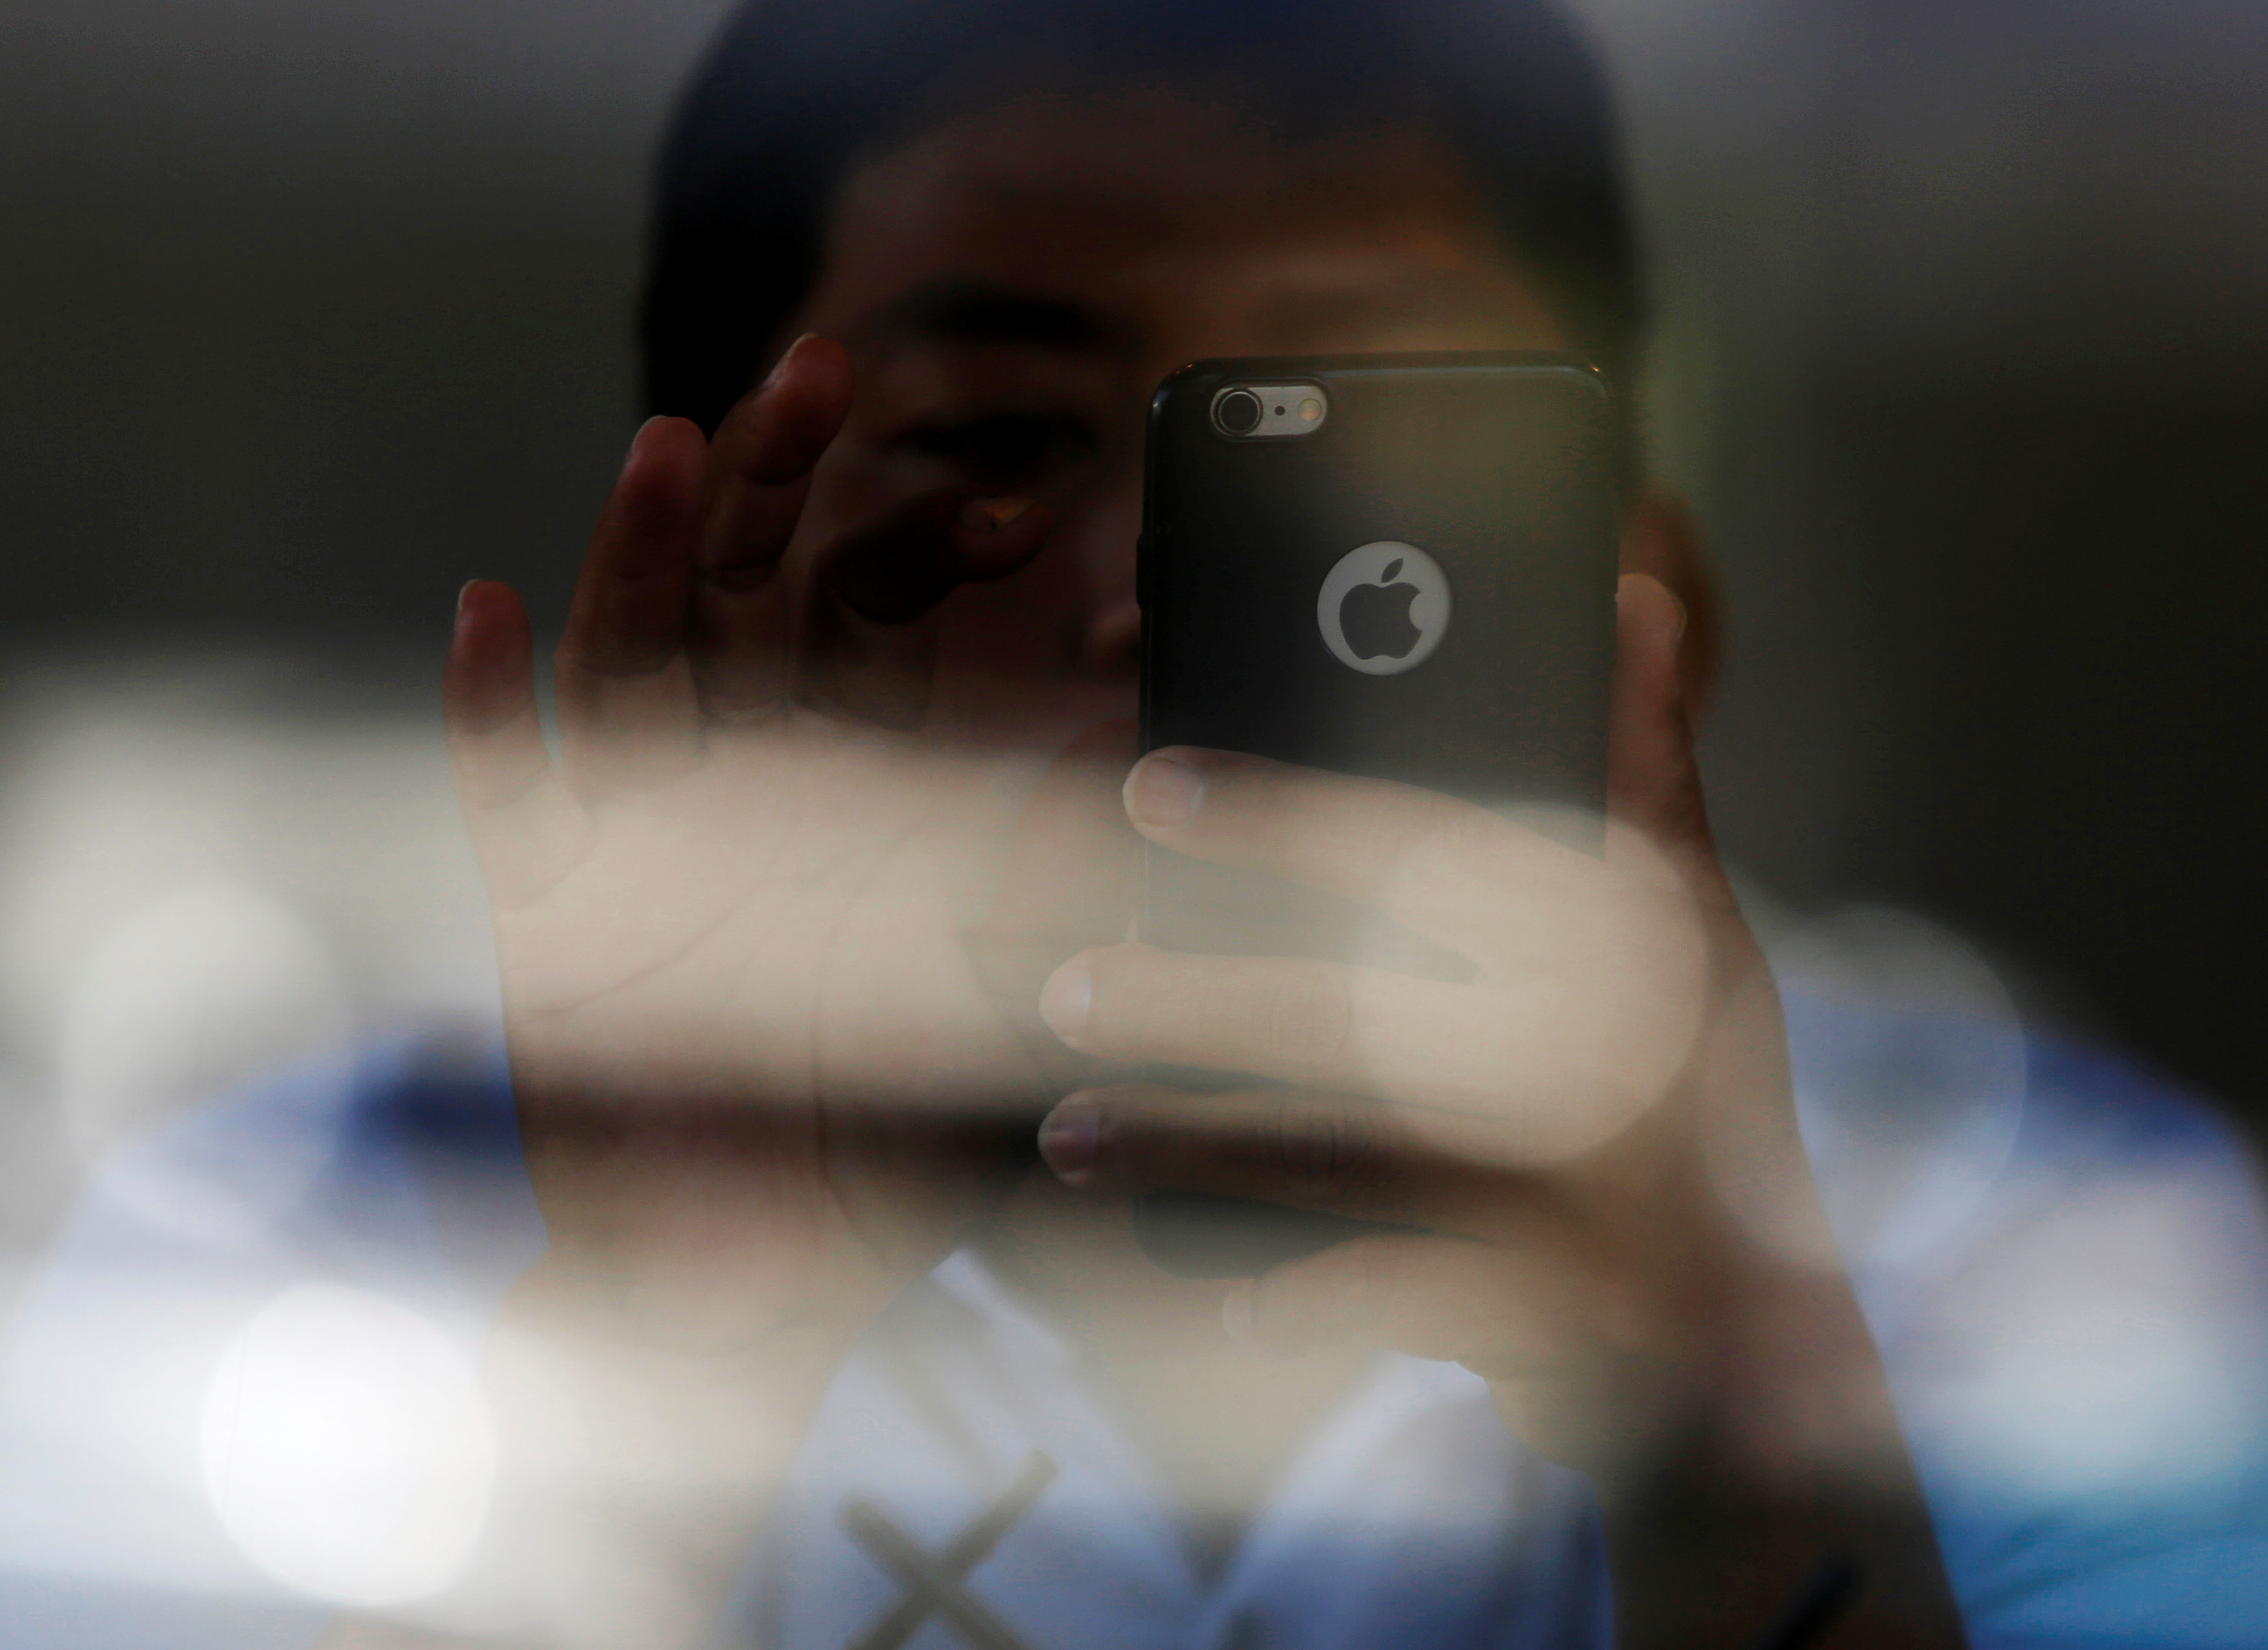 FILE - A man looks at his smartphone at a coffee shop in Phnom Penh, Cambodia, Oct. 23, 2018.